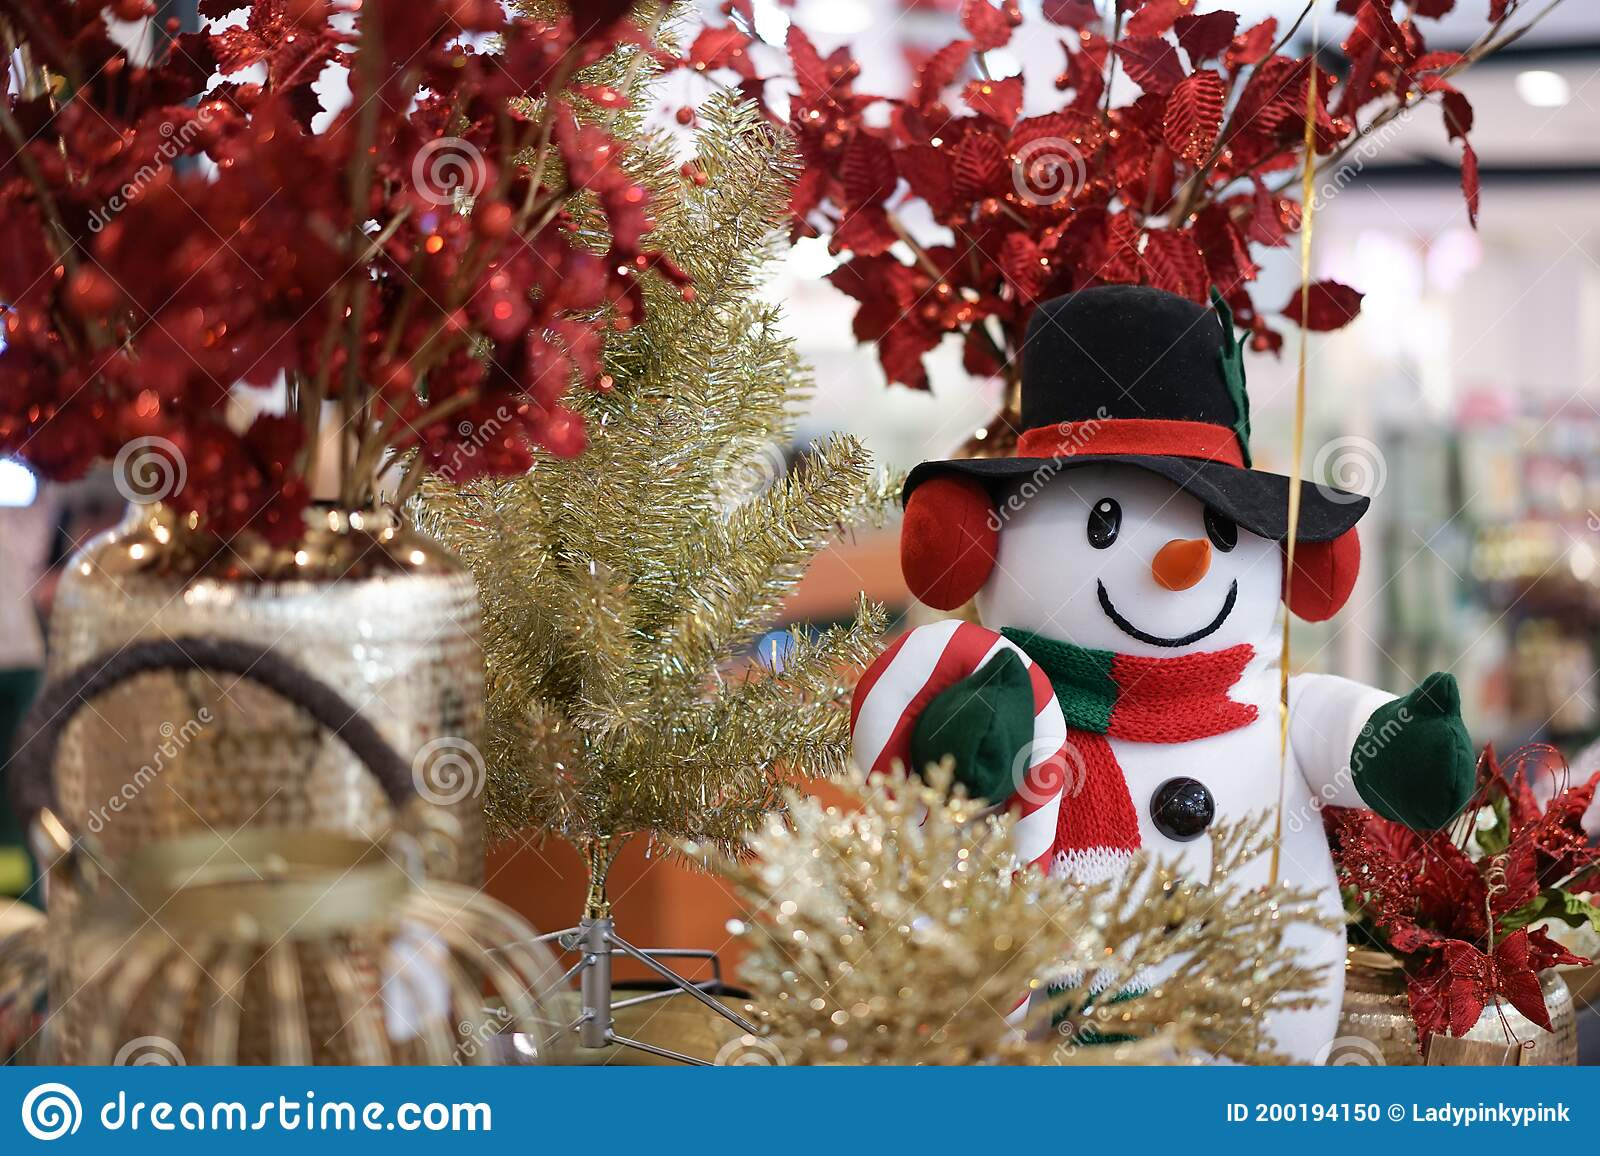 Cute Snowman A Lovely Snow Man For Decorate A Christmas Tree Stock Photo Image Of Ornament Season 200194150